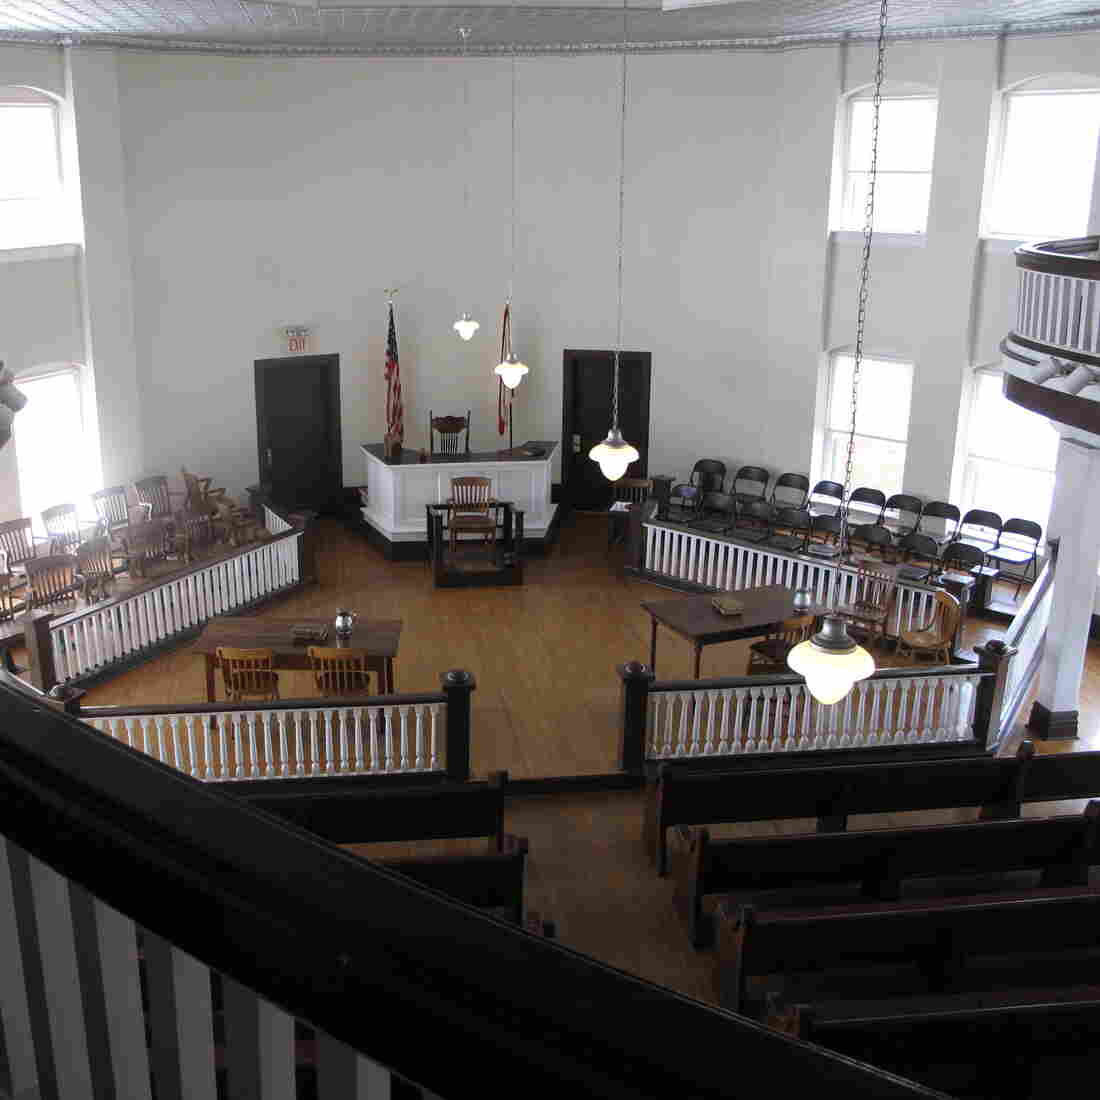 Every spring, local residents have staged a play based on To Kill a Mockingbird in this courthouse in Monroeville, Ala.